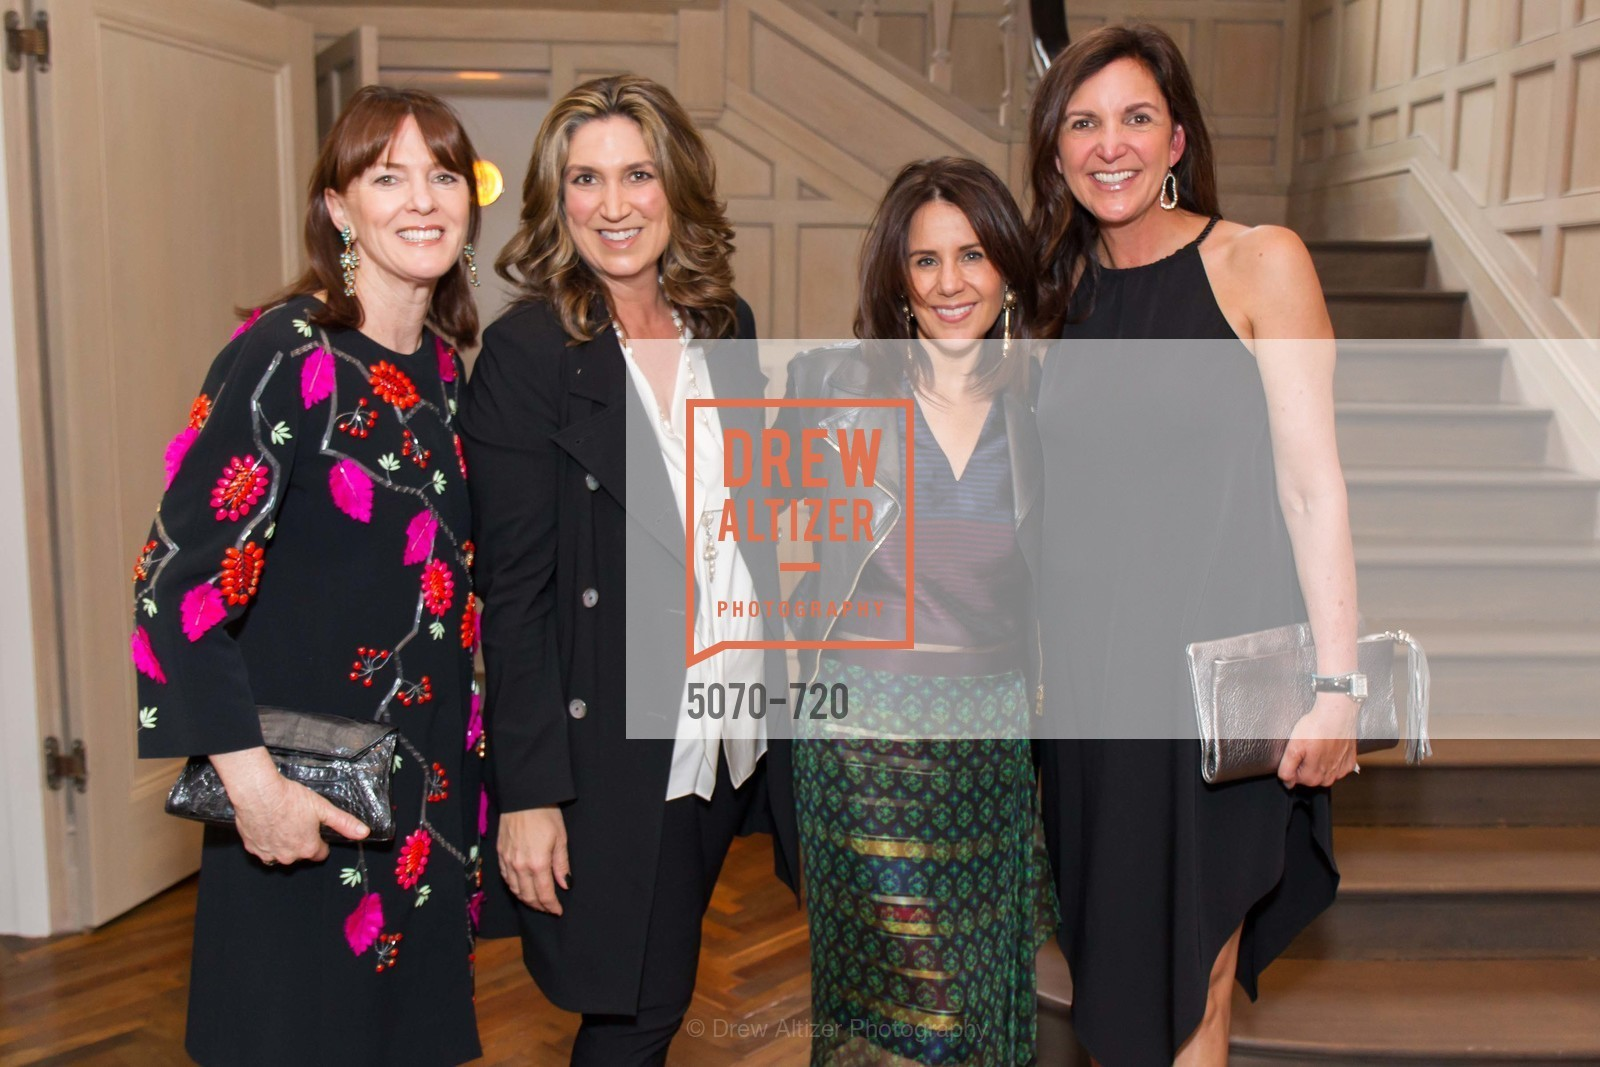 Allison Speer, Marissa Brandon, Leslie Campoy, Jenna Feinberg, C MAGAZINE Editors Cocktail Party, US, May 13th, 2015,Drew Altizer, Drew Altizer Photography, full-service agency, private events, San Francisco photographer, photographer california